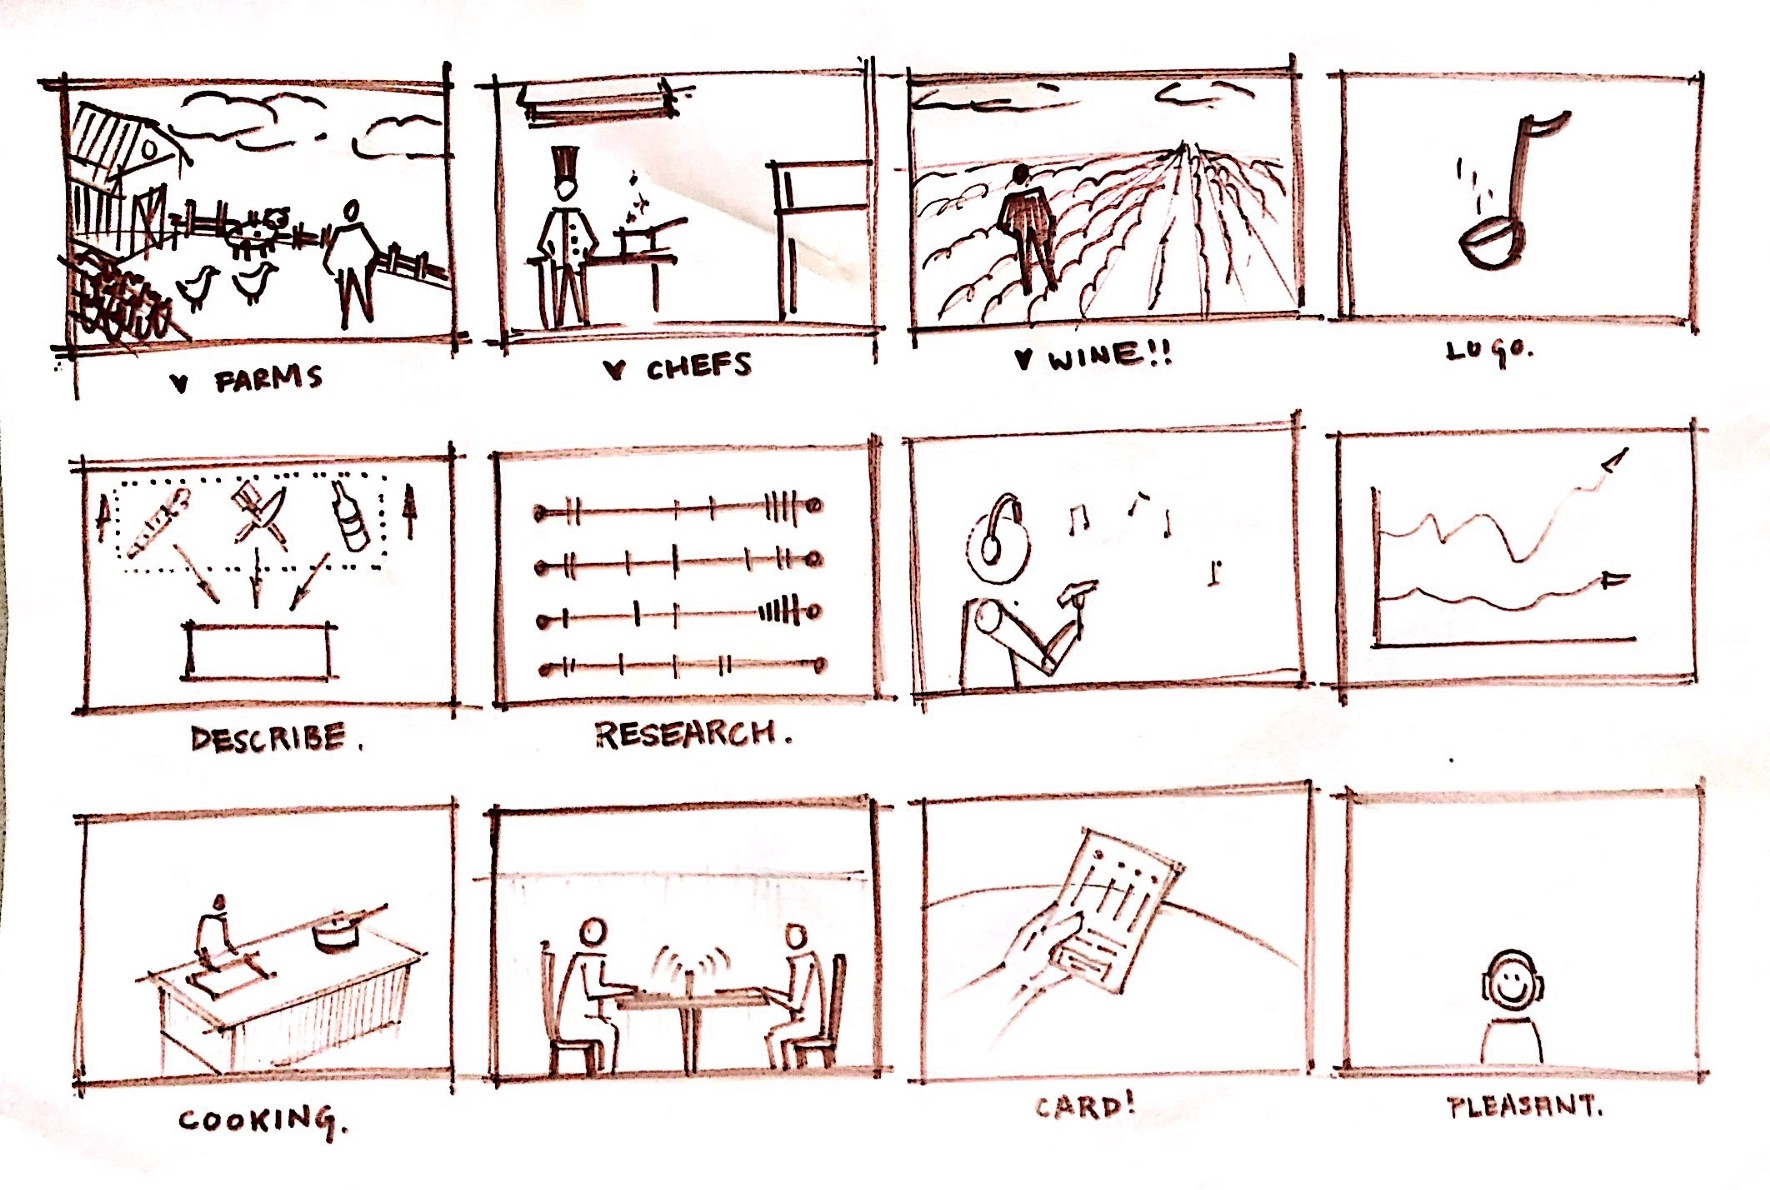 Storyboard for Final Video